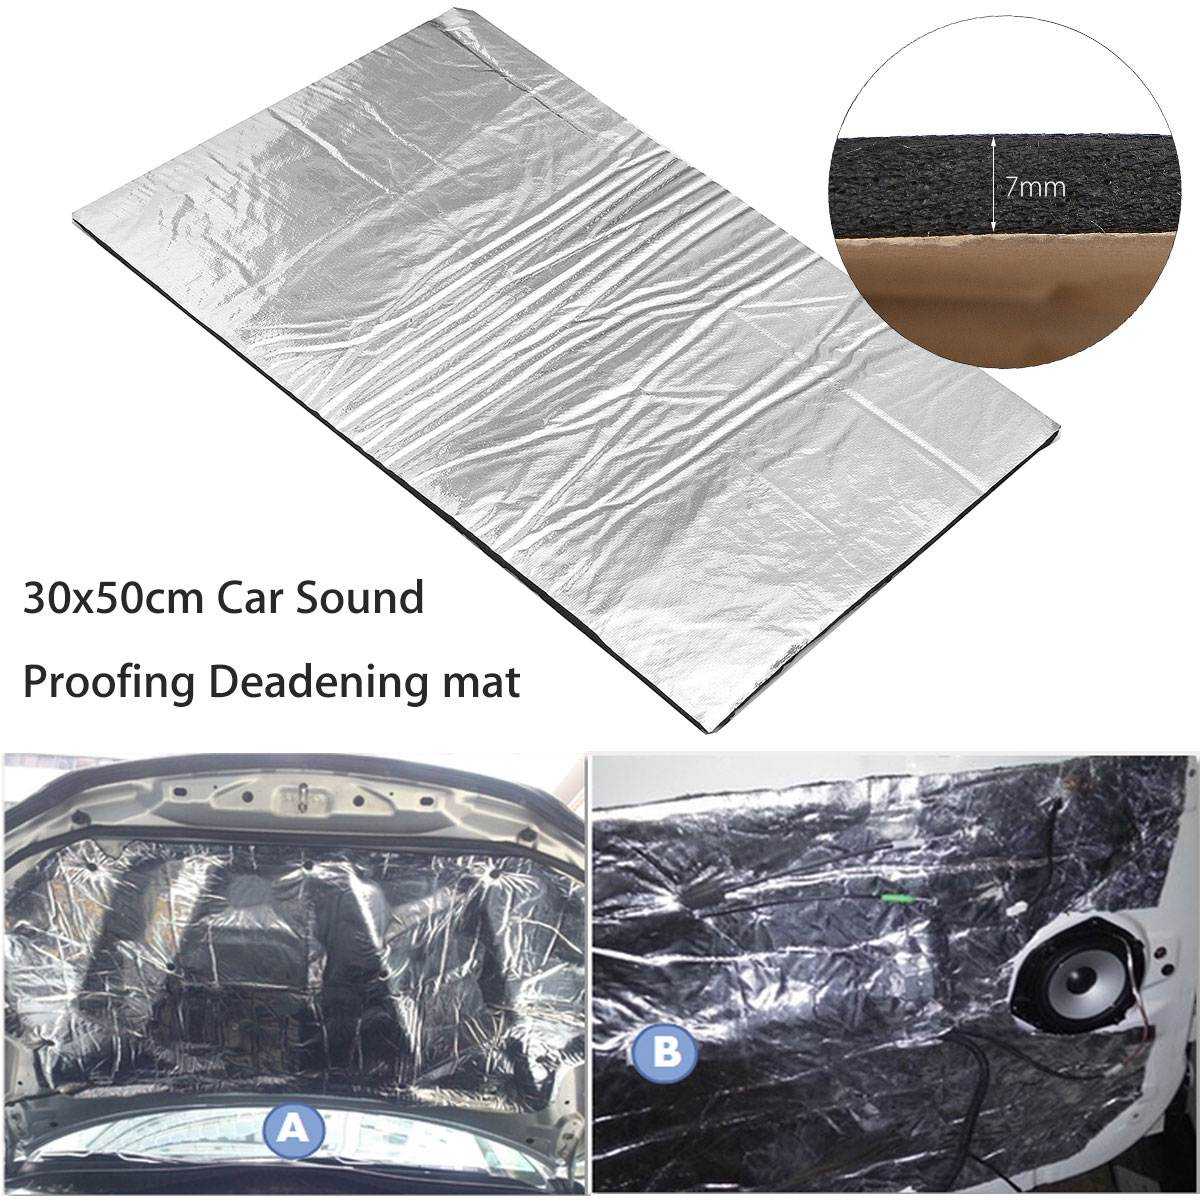 30x50cm Car Glass Fibre Sound Insulation Proofing Deadening 7mm Closed Cell Foam натуральный соевый соус pearl river bridge organic soy sauce 300 мл